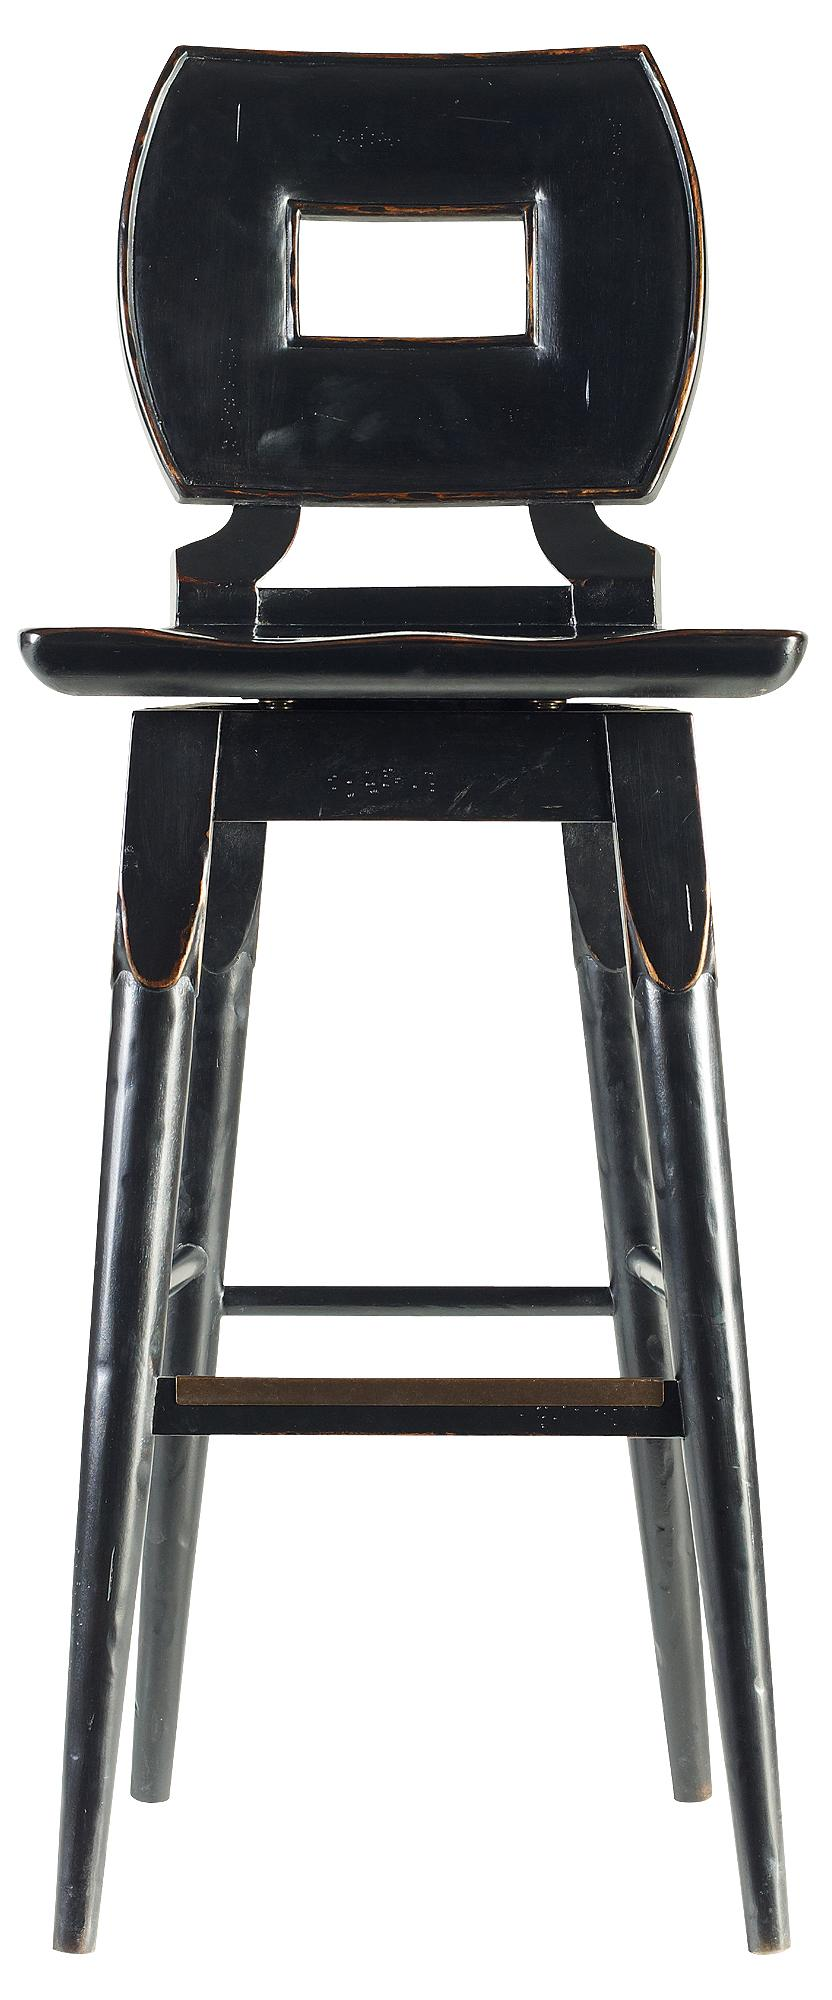 Stanley Furniture The Classic Portfolio Artisan Wood Bar Stool - Item Number: 135-81-73